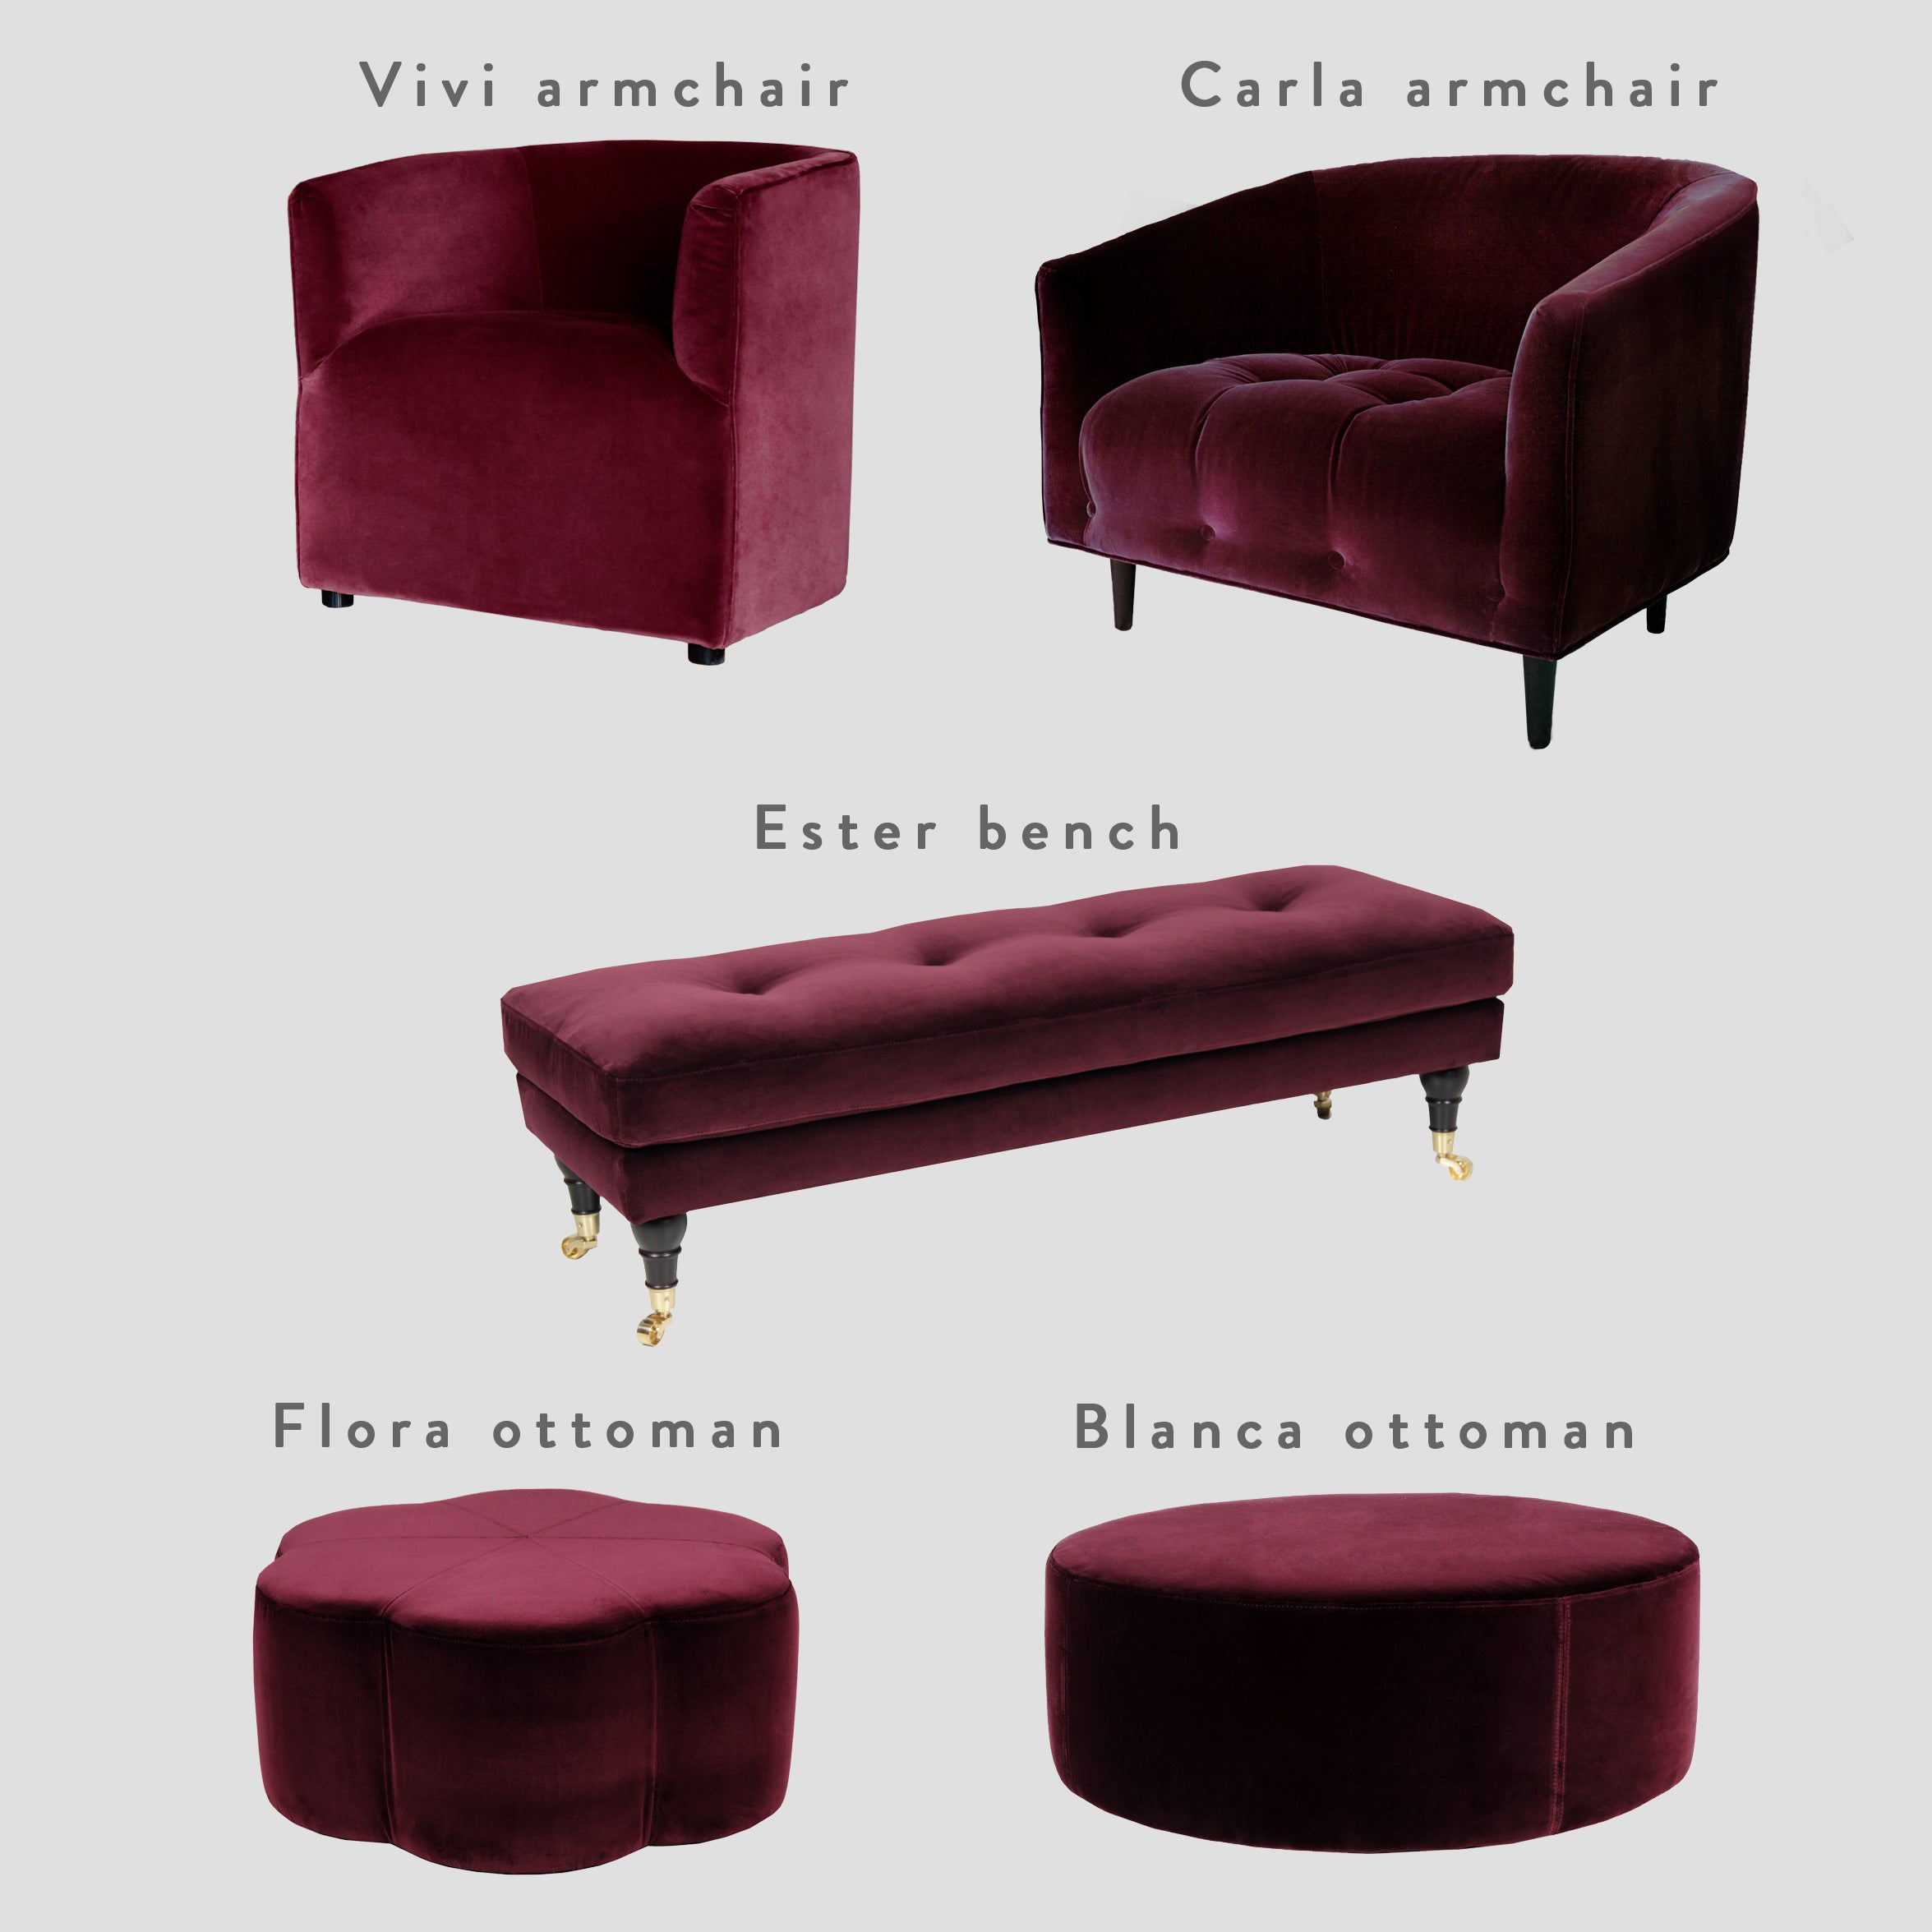 Furniture velvet fabric swatch – Ruby Red